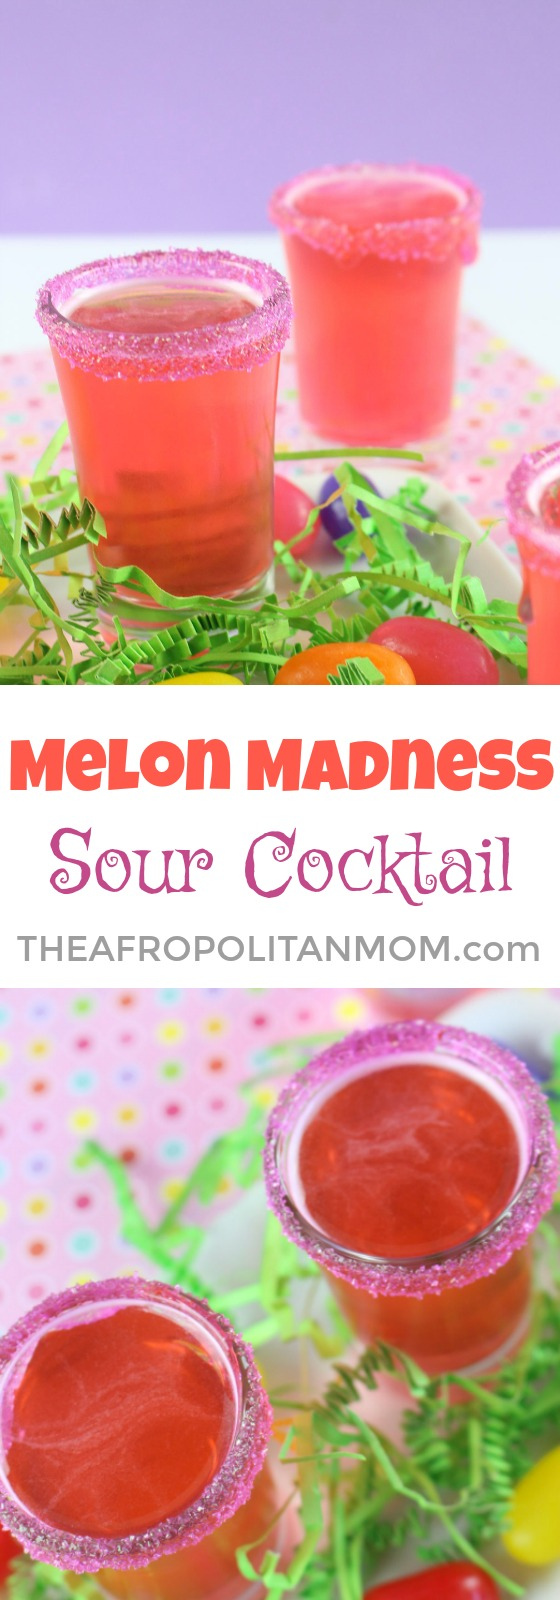 Sunday Brunch? Give this Melon Madness Sour Cocktail a try. It's the perfect drink to have with your best girlfriends